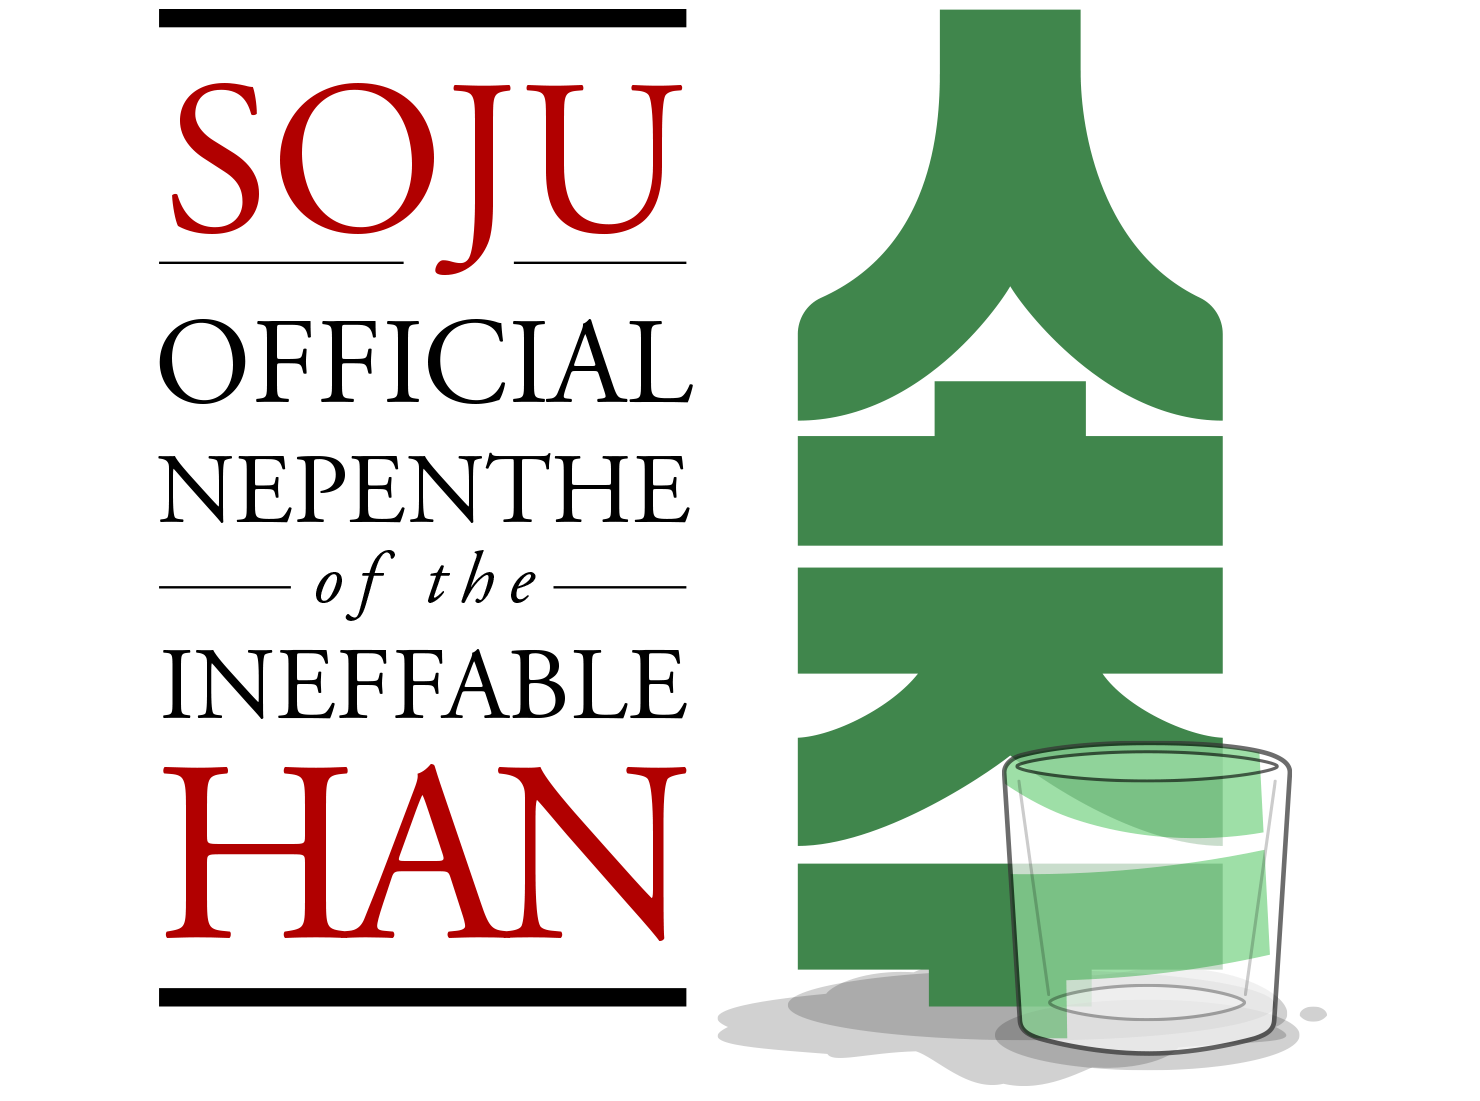 Soju - official nepenthe of the ineffable Han